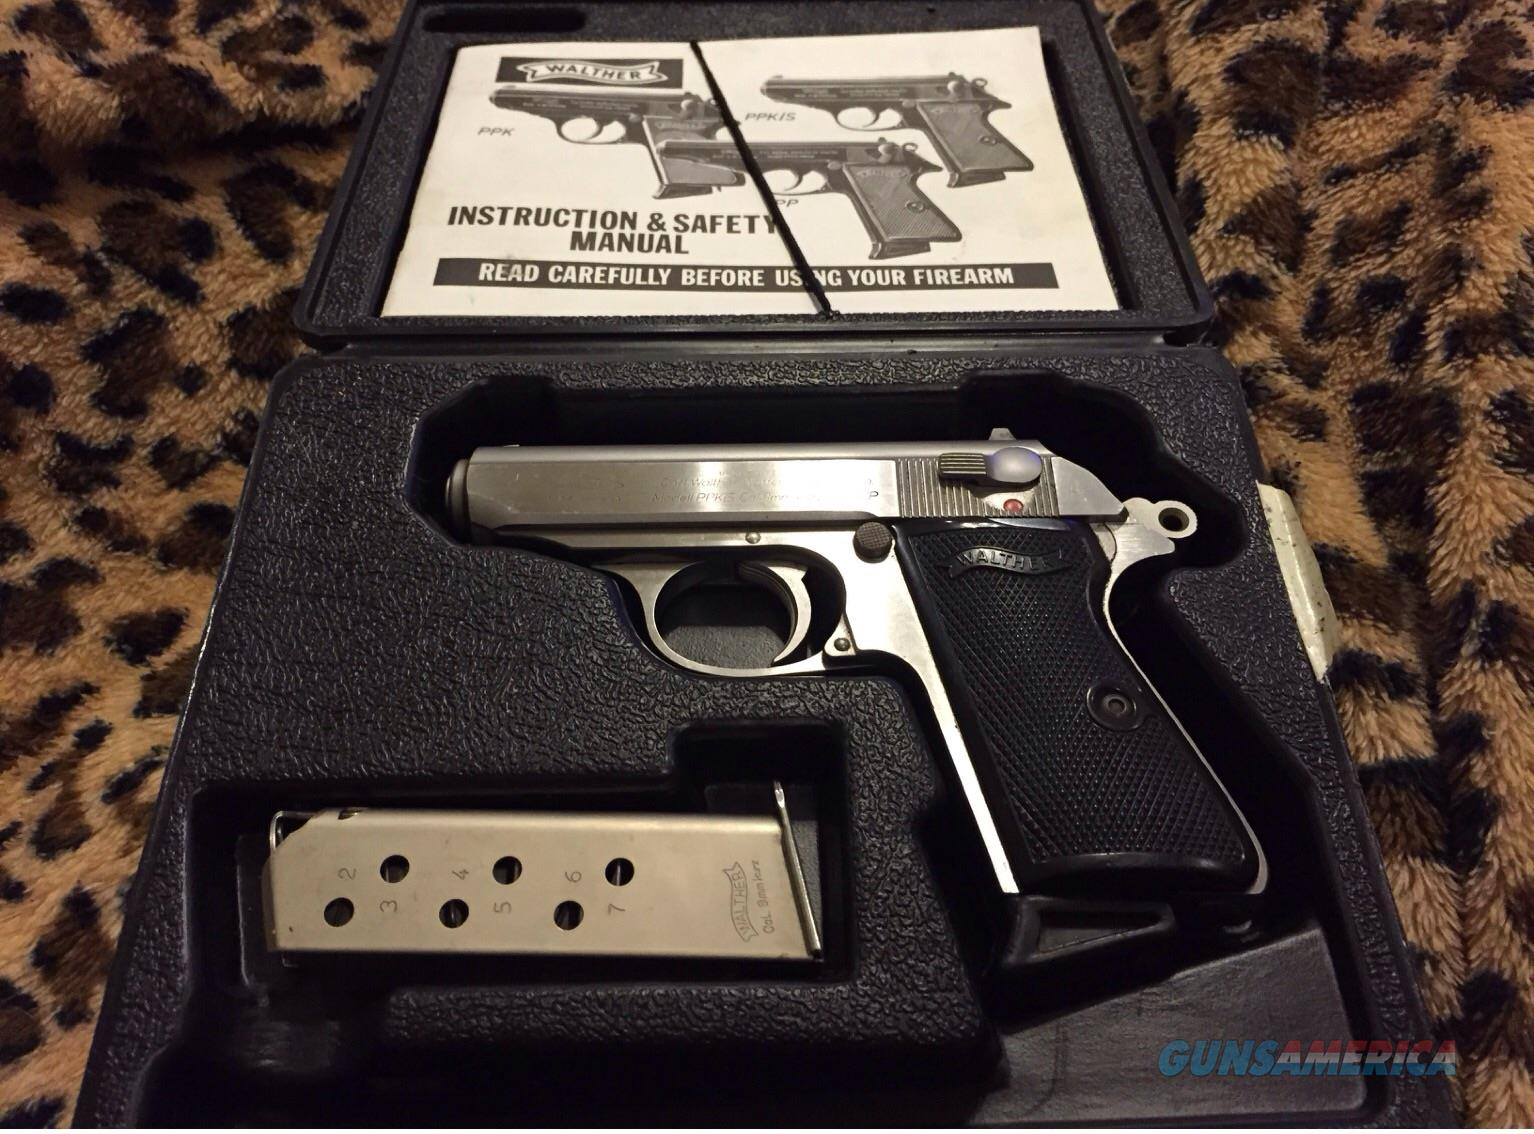 ppk walther manual s how to and user guide instructions u2022 rh taxibermuda co Walther PPK BB Gun Walther CO2 Shotgun